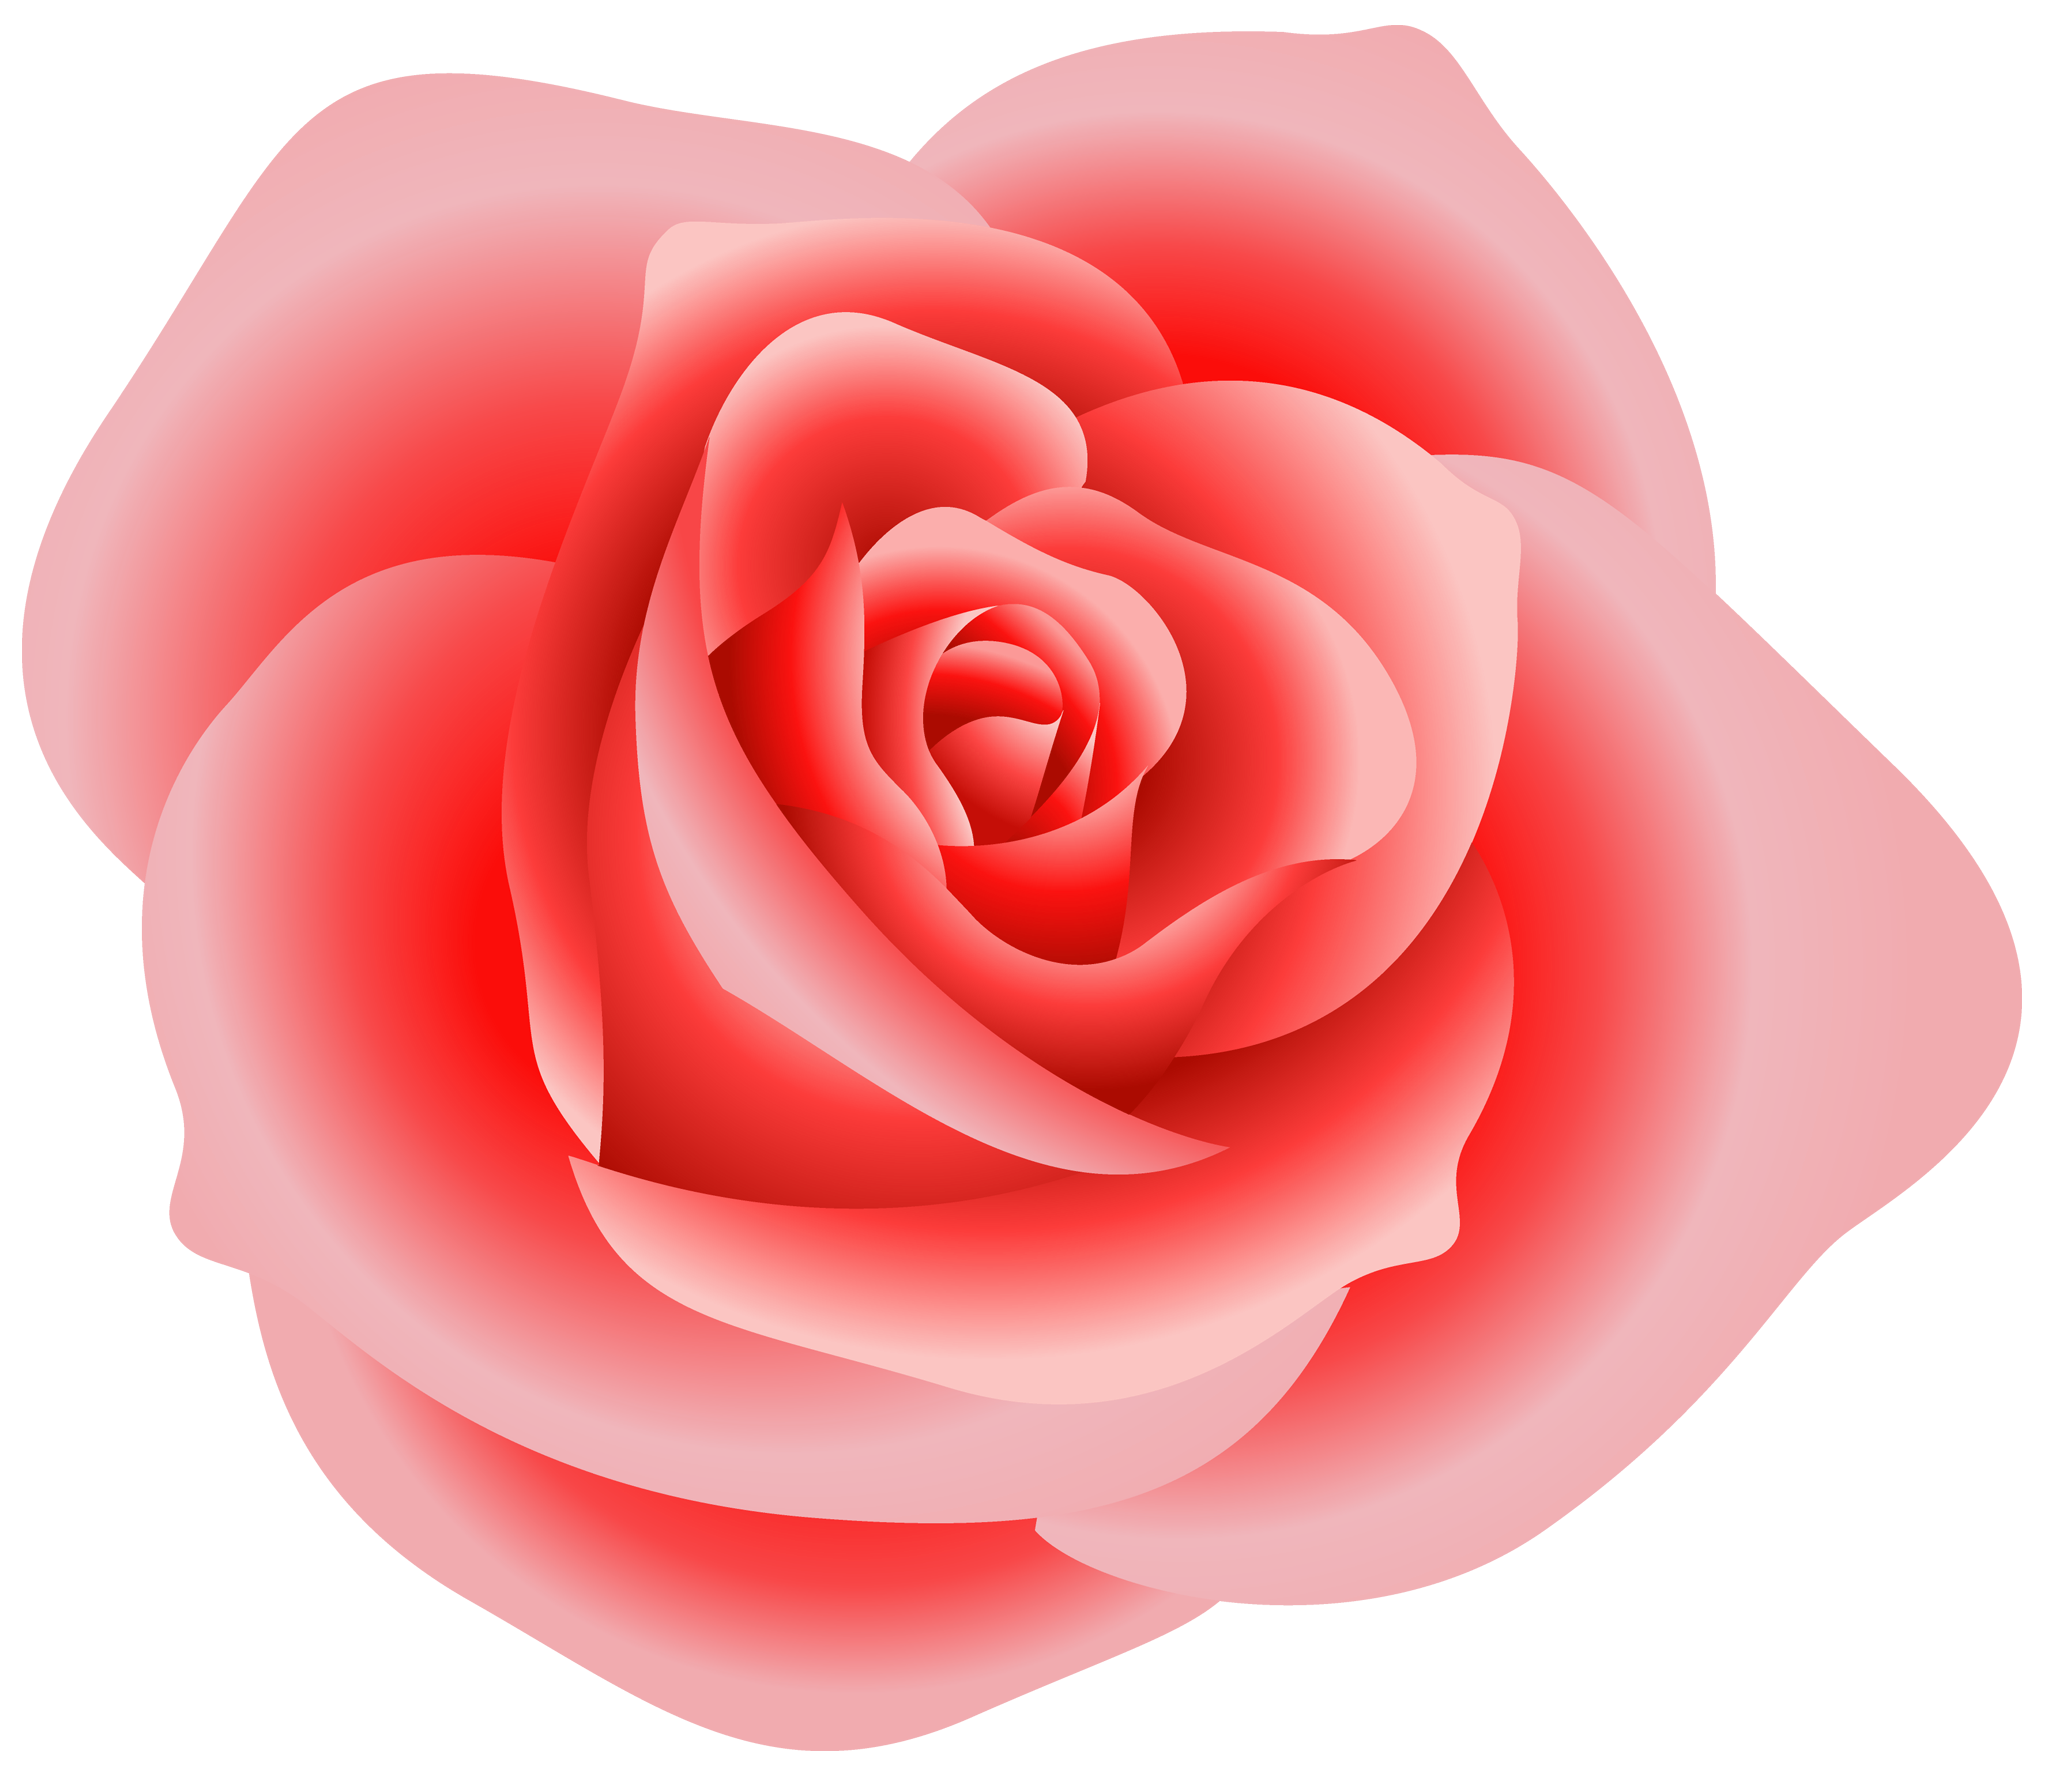 Clipart roses chocolate. Large red rose gallery